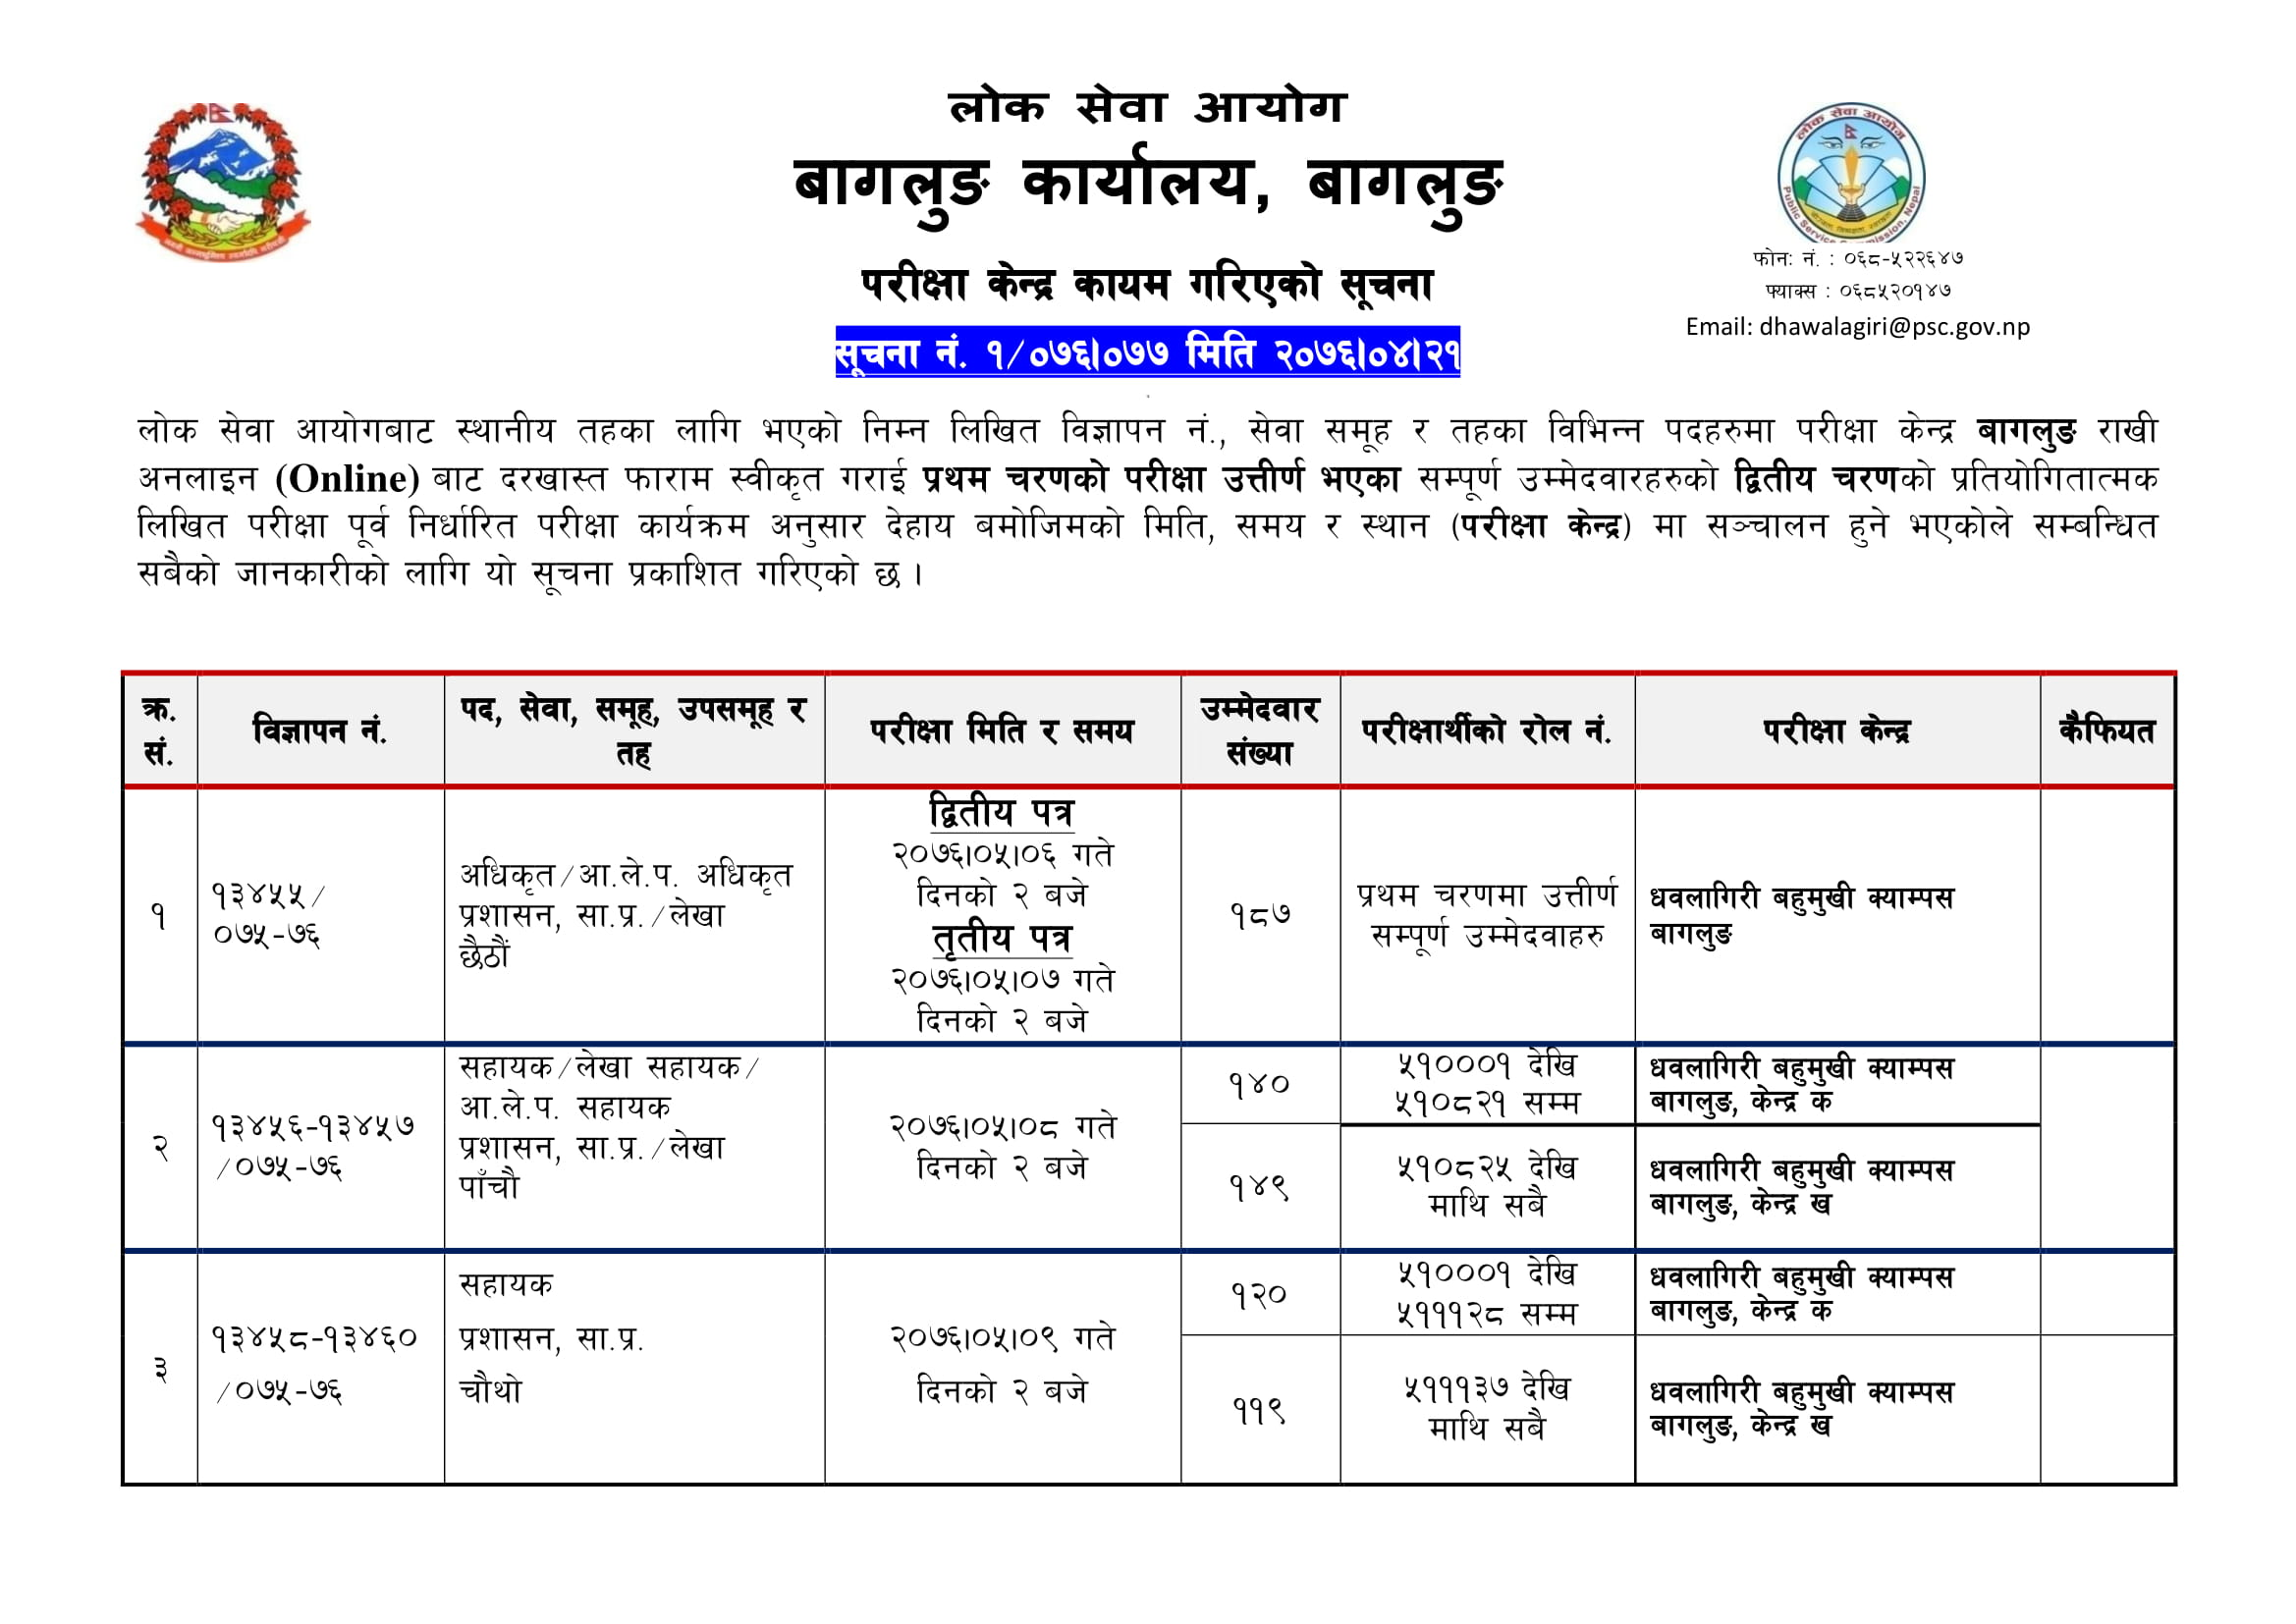 Kharidar Second Paper Exam Center, Kharidar Second Paper Exam Center baglung, Kharidar Second Paper Exam Center 2076, Second Paper Exam Center 2076, Second Paper Exam Center, Lok Sewa Aayog, Lok Sewa Aayog exam center, Lok Sewa Aayog Second Paper Exam Center, Lok Sewa Aayog Second Paper Exam Center 2076, Lok Sewa Aayog kharidar Exam Center, Lok Sewa Aayog kharidar, psc eam center, psc Nepal, psc exam center 2076, psc Nepal exam center, psc kharidar exam center, psc kharidar exam center 2076, psc haridar exam center, psc kharidar second paper exam center, kharidar exam center baglung, Kharidar Second Paper Exam Center baglung, psc exam center baglung, lok sewa exam center baglung, lok sewa aayog exam center baglung, Second Paper Exam Center baglung, 4th level exam center, lok sewa aayog 4th level exam center,